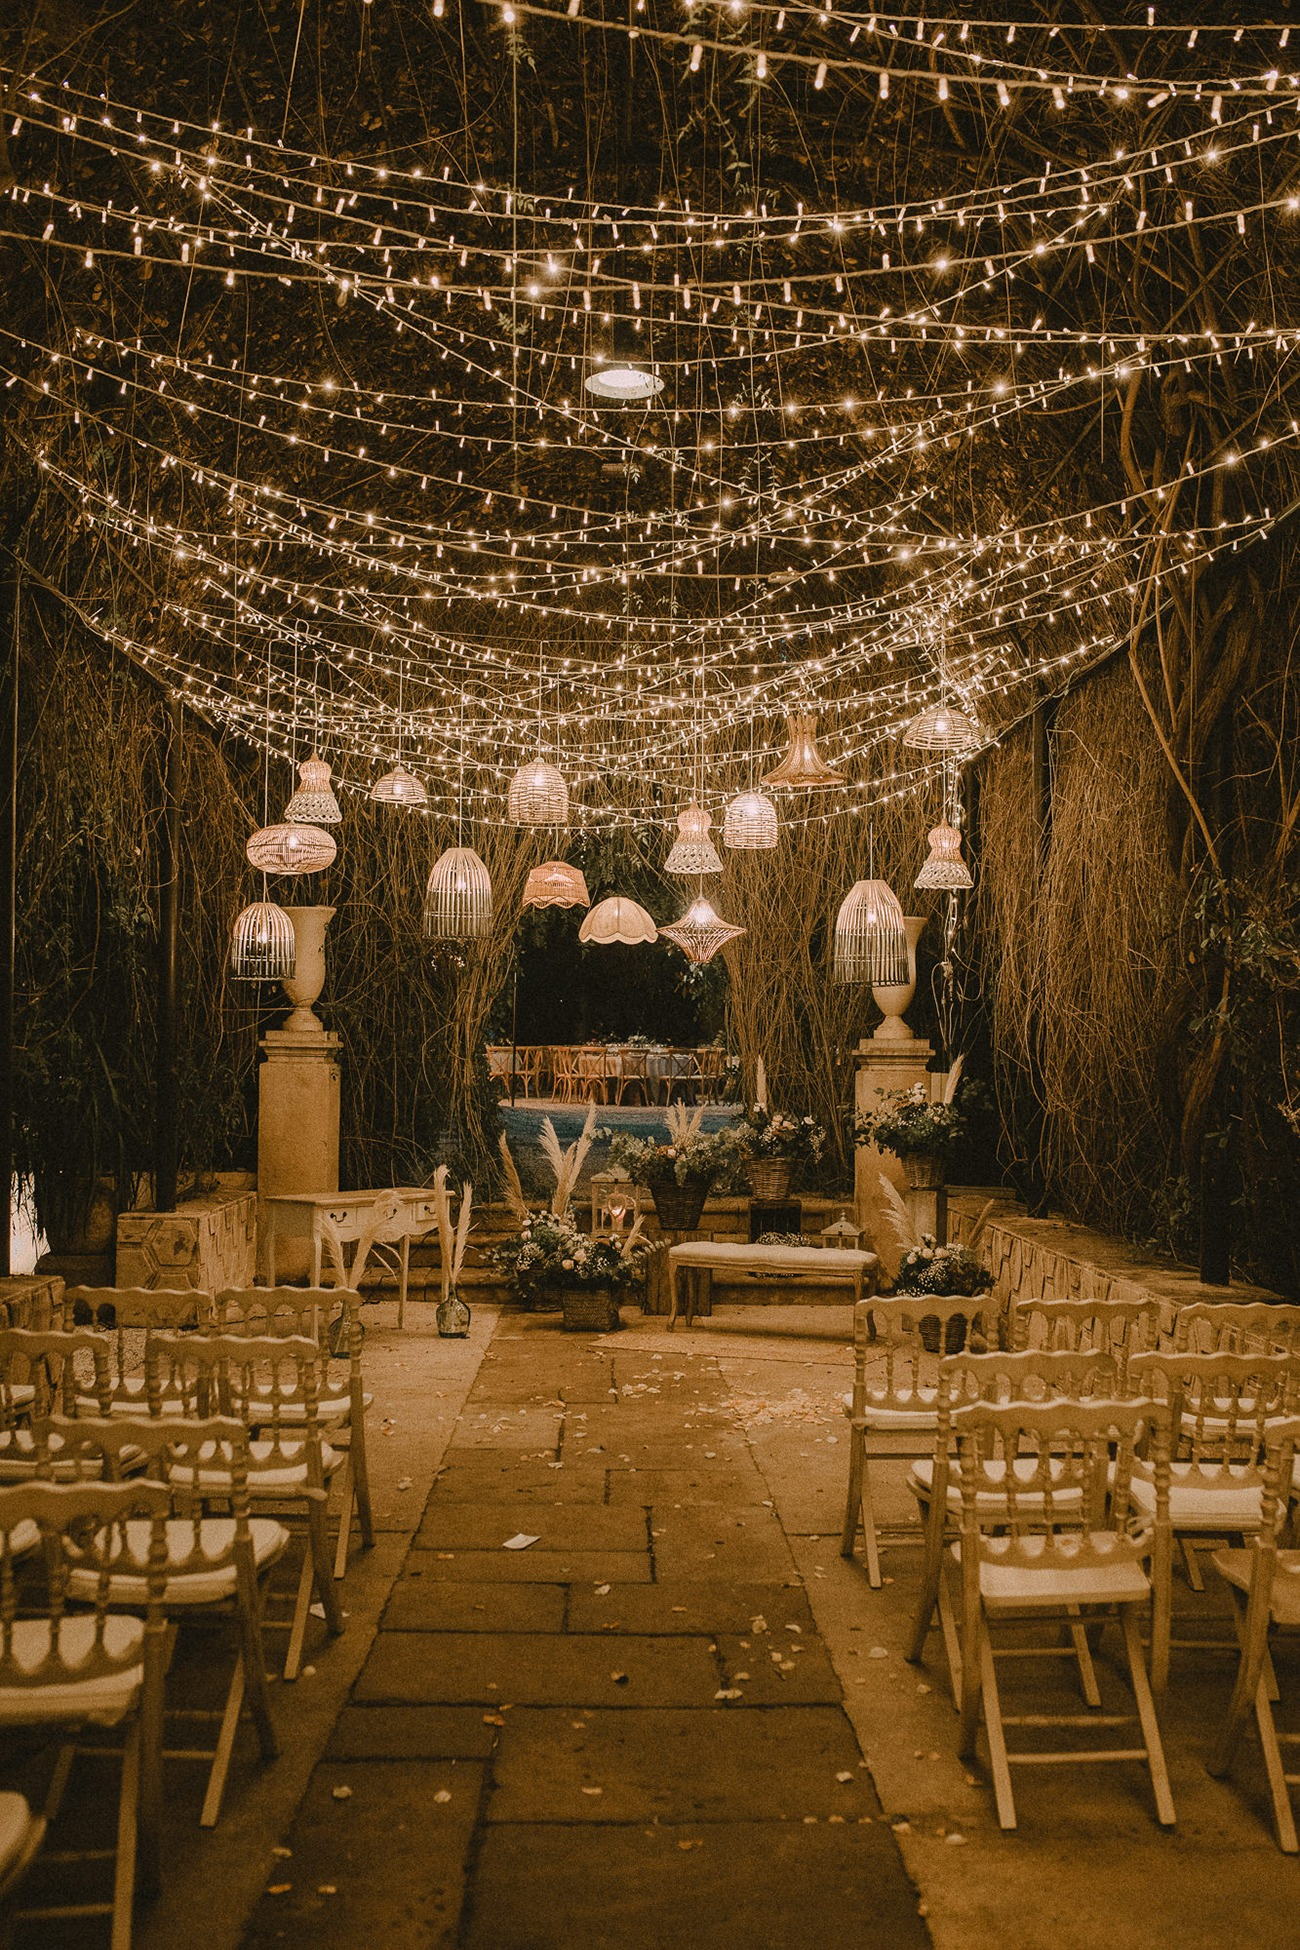 Twinkle Lights and Lanterns for a Small Wedding Ceremony